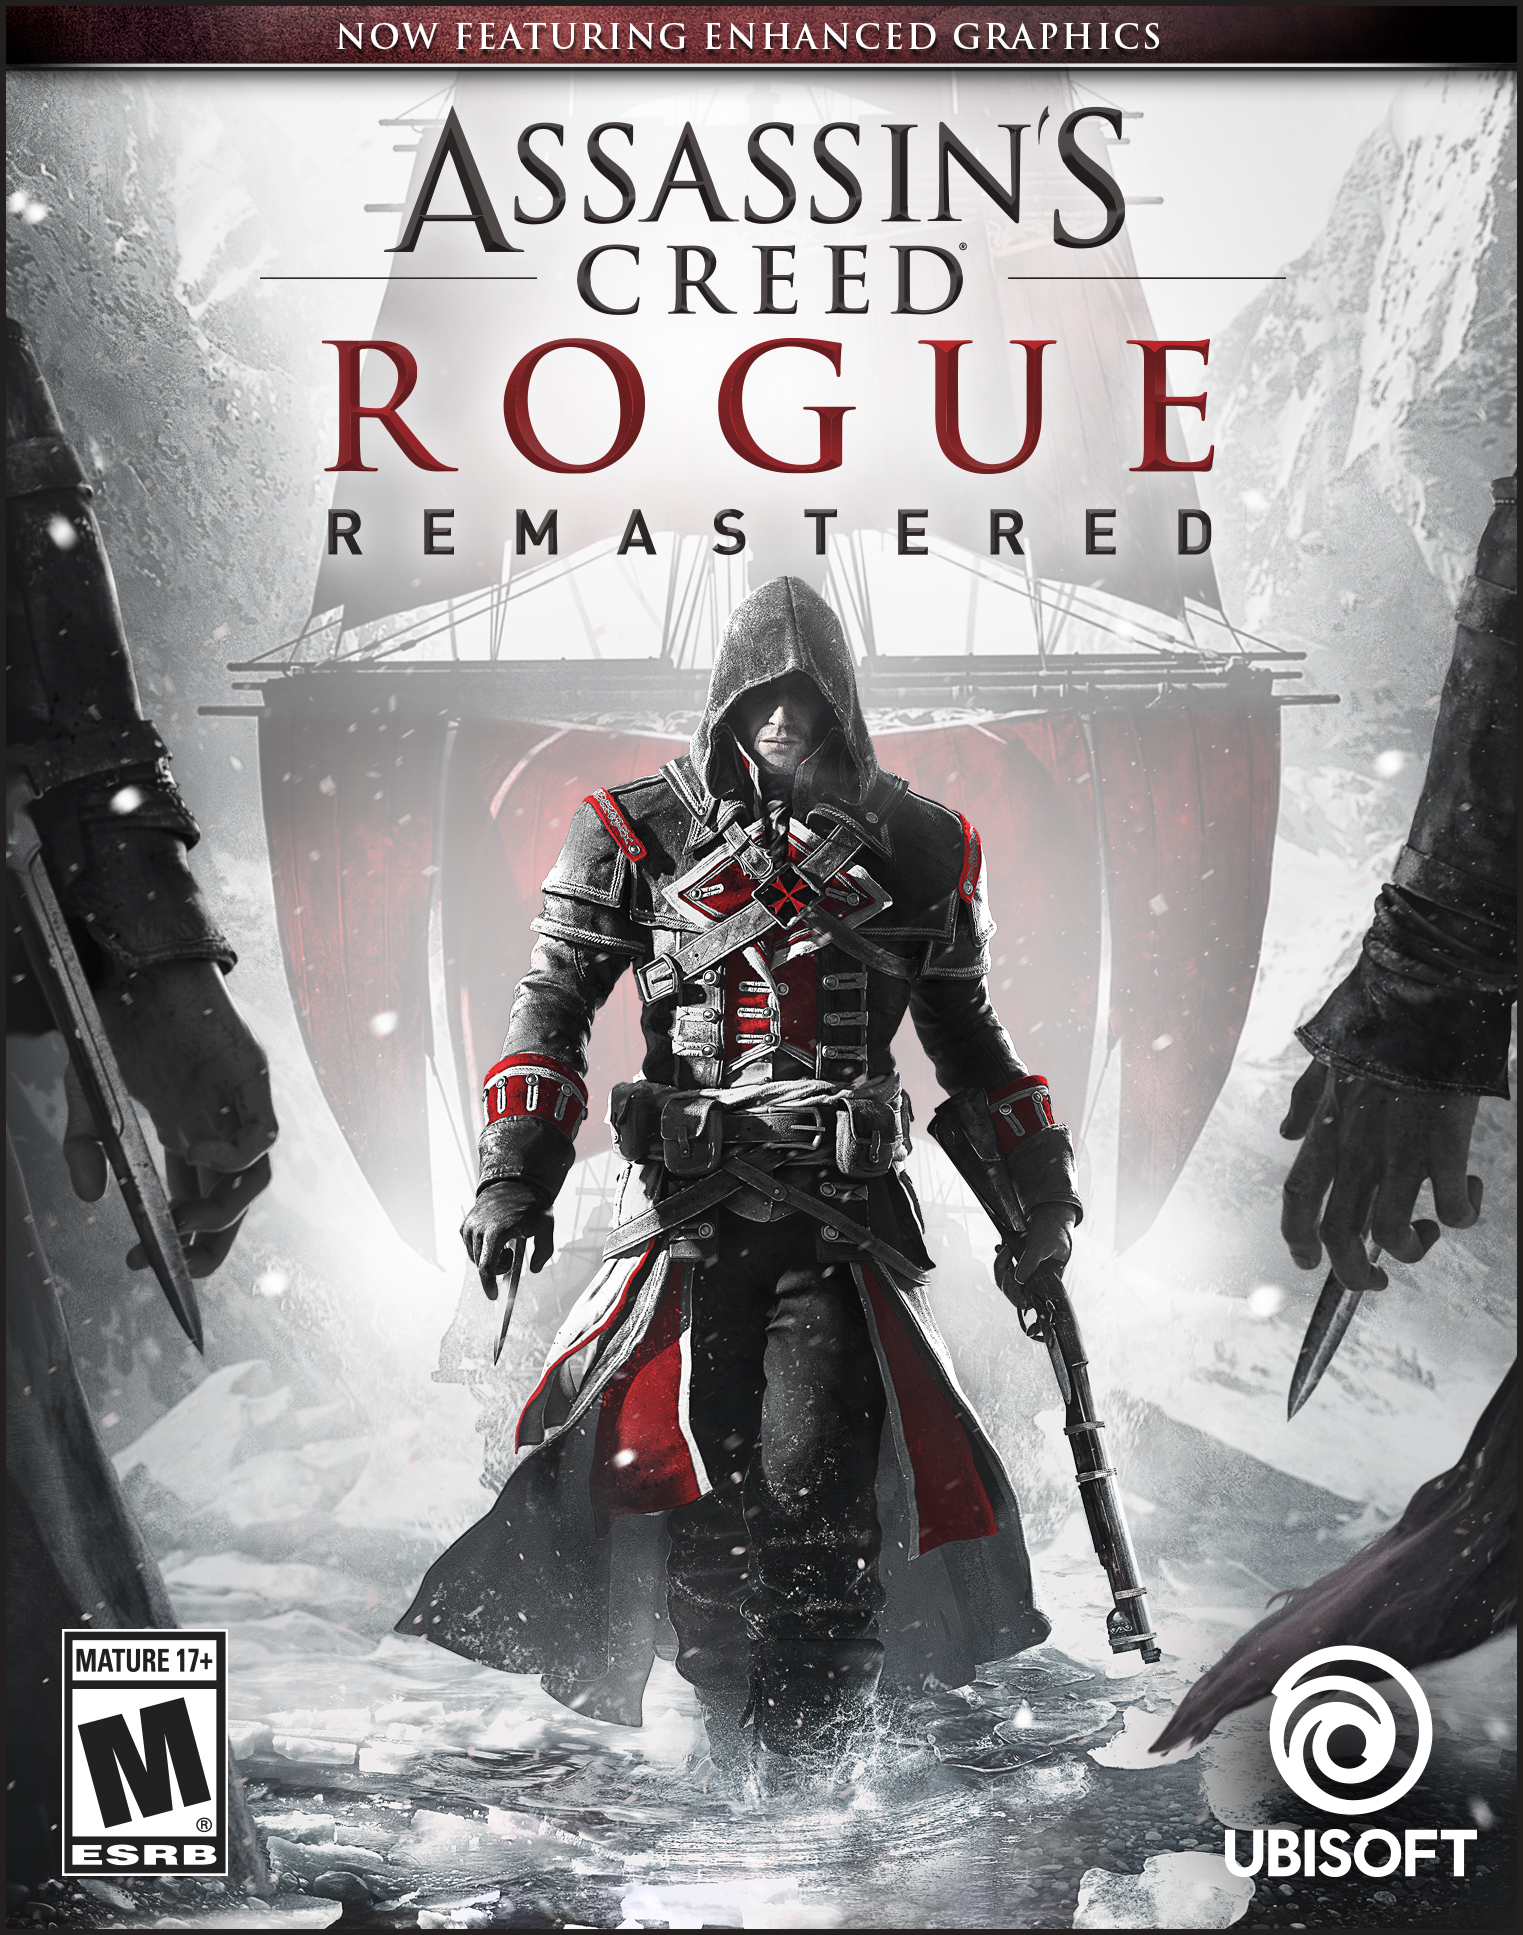 Assassins Creed Rogue Remastered Cover Art